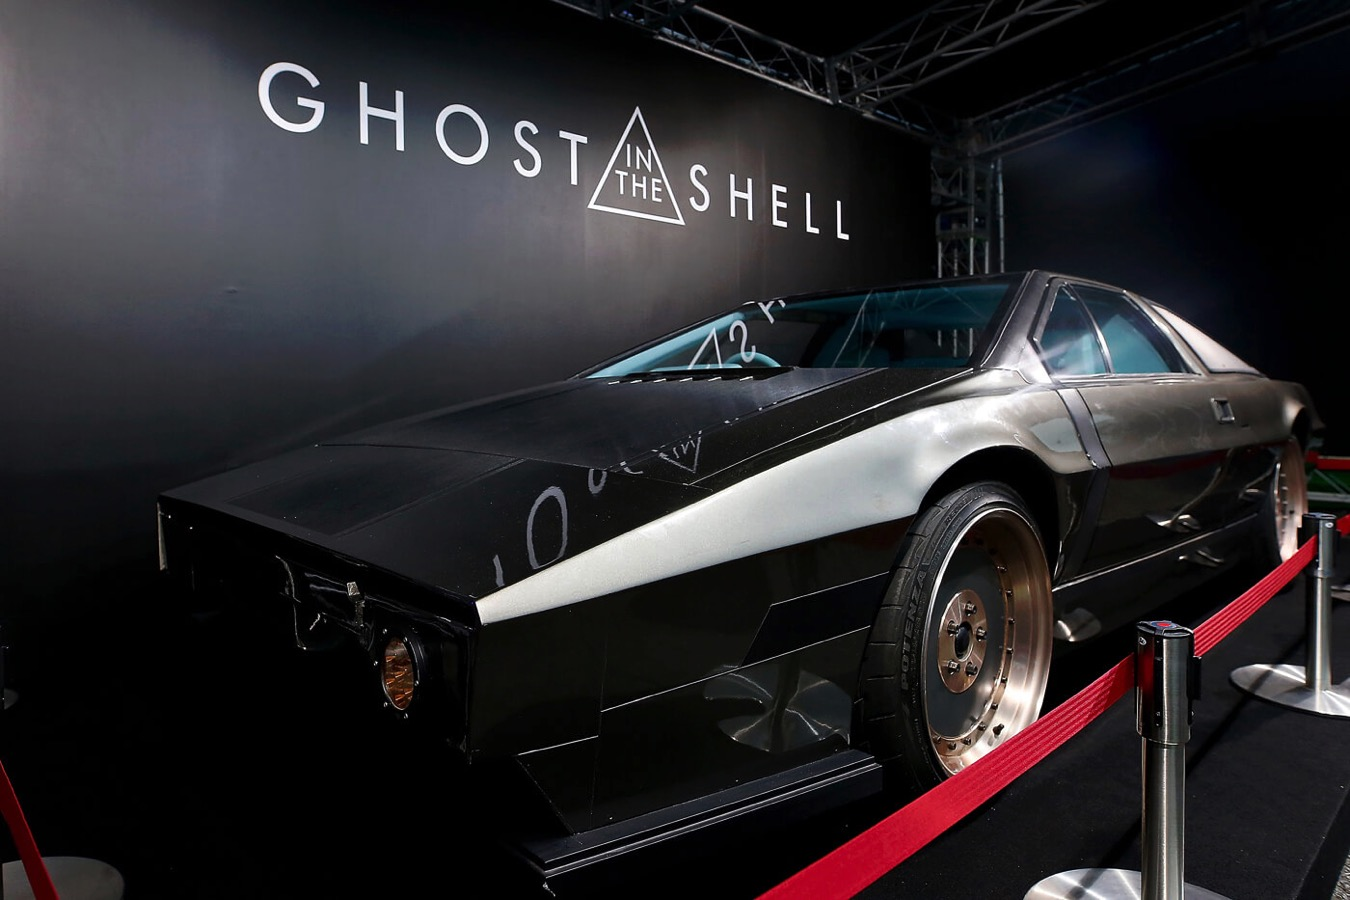 Ghost in the shell batou car 10 copy